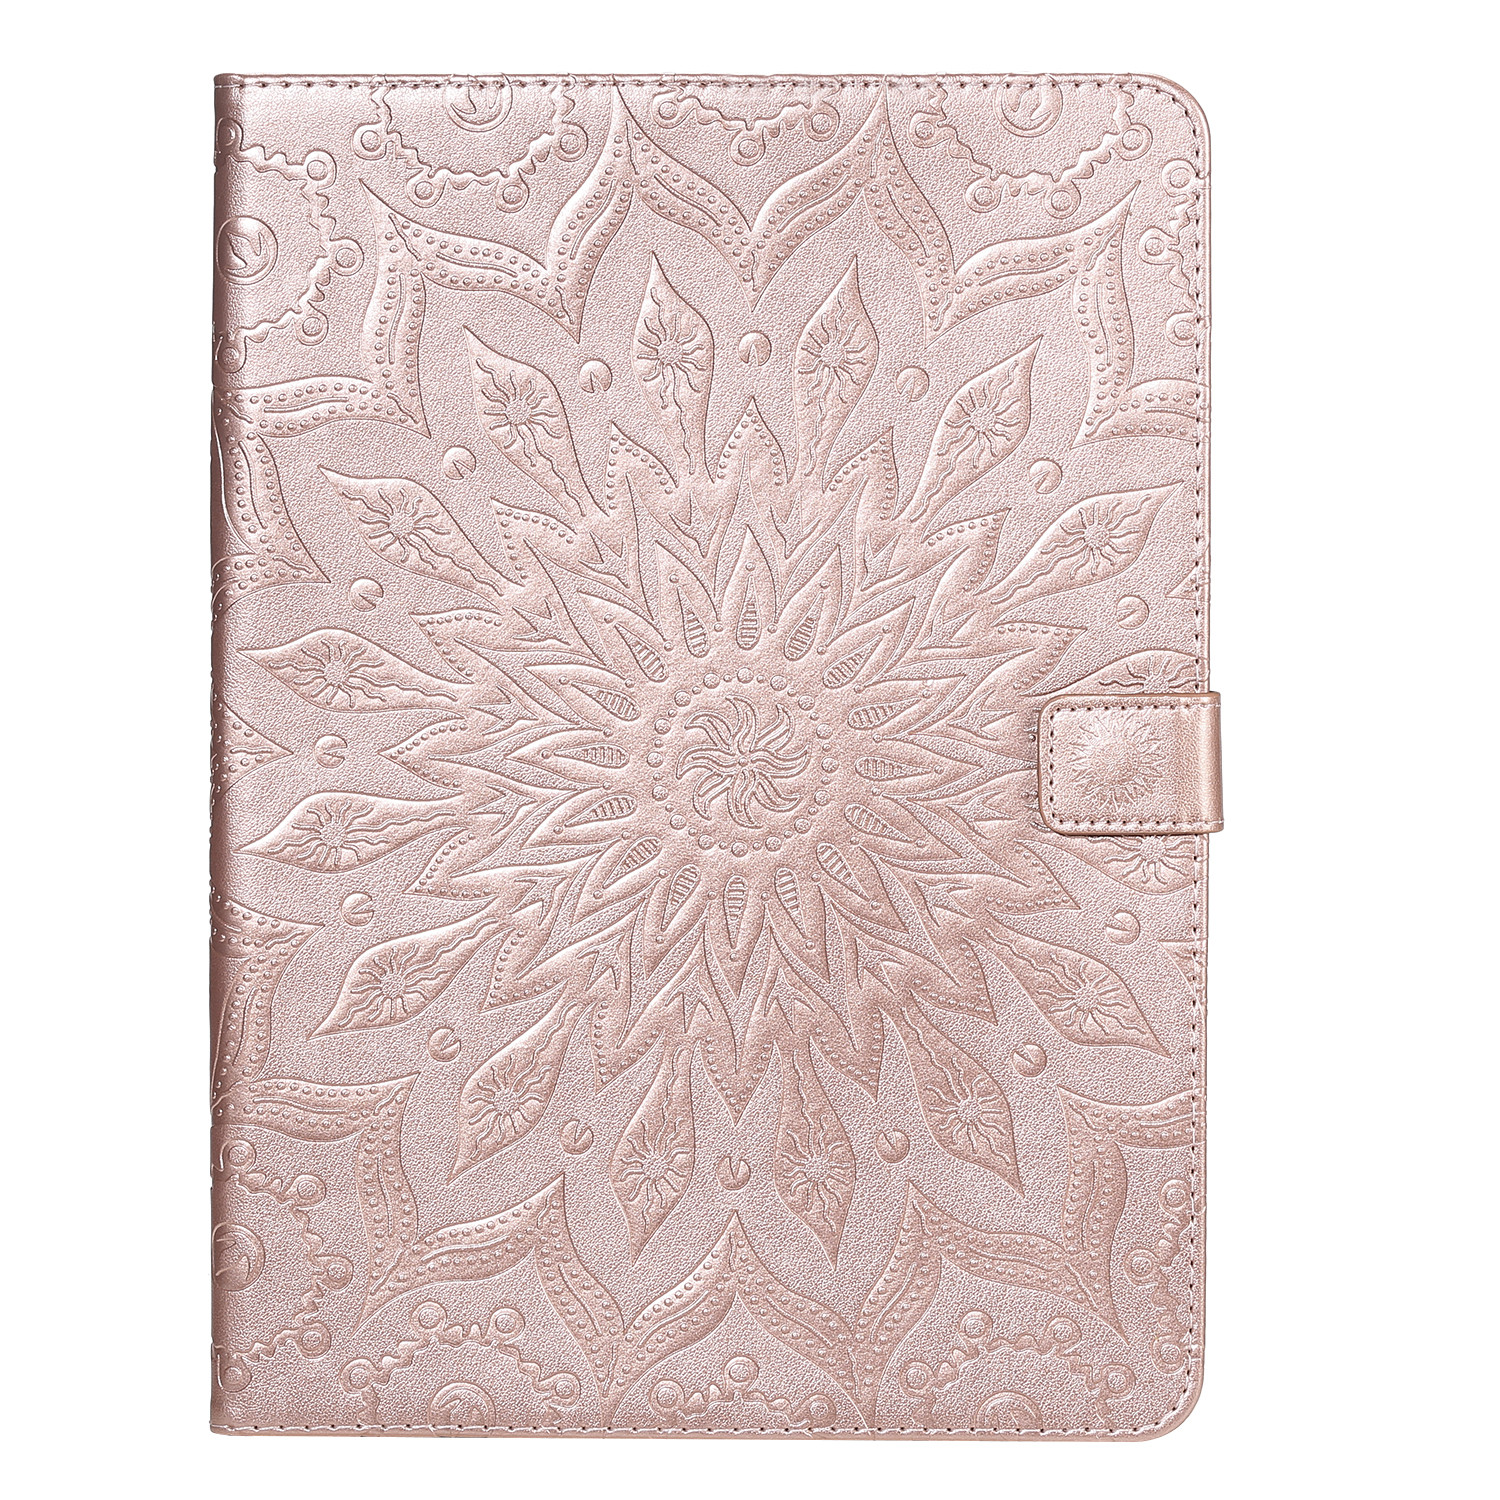 3 Green Flower 3D Embossed Cover for iPad Pro 12 9 Case 2020 Leather Protective Shell Skin for